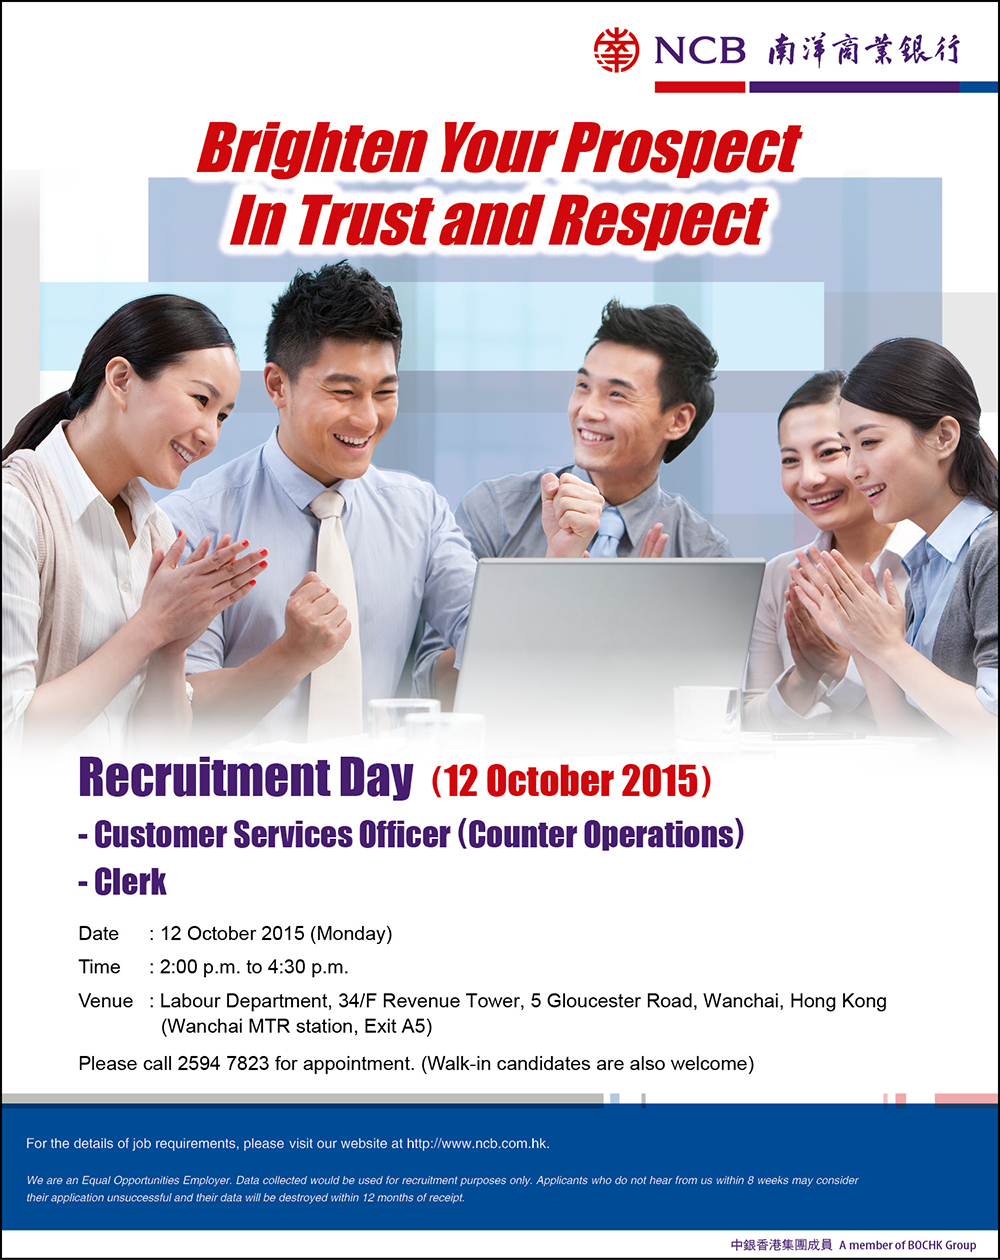 Recruitment Day on 12 October 2015 offered by Nanyang Commercial Bank